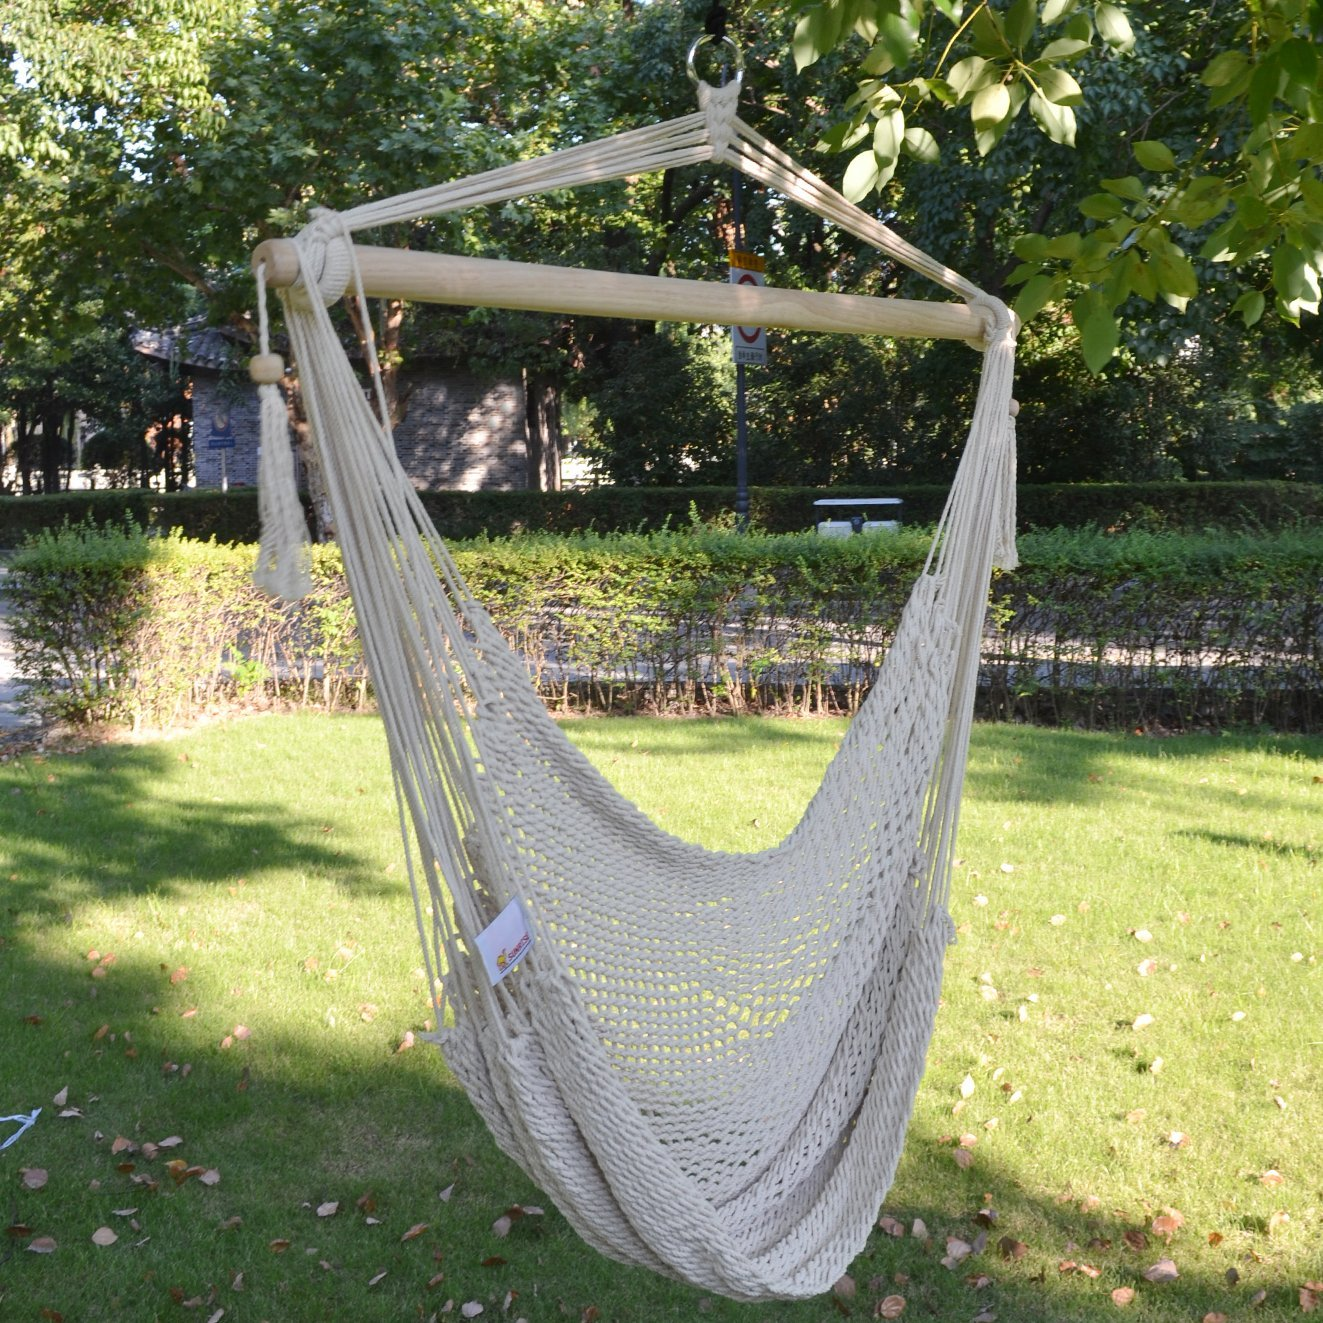 Sunrise Outdoor Patio Hanging Swing Cotton Rope Hammock Chair, Up to 260 lbs